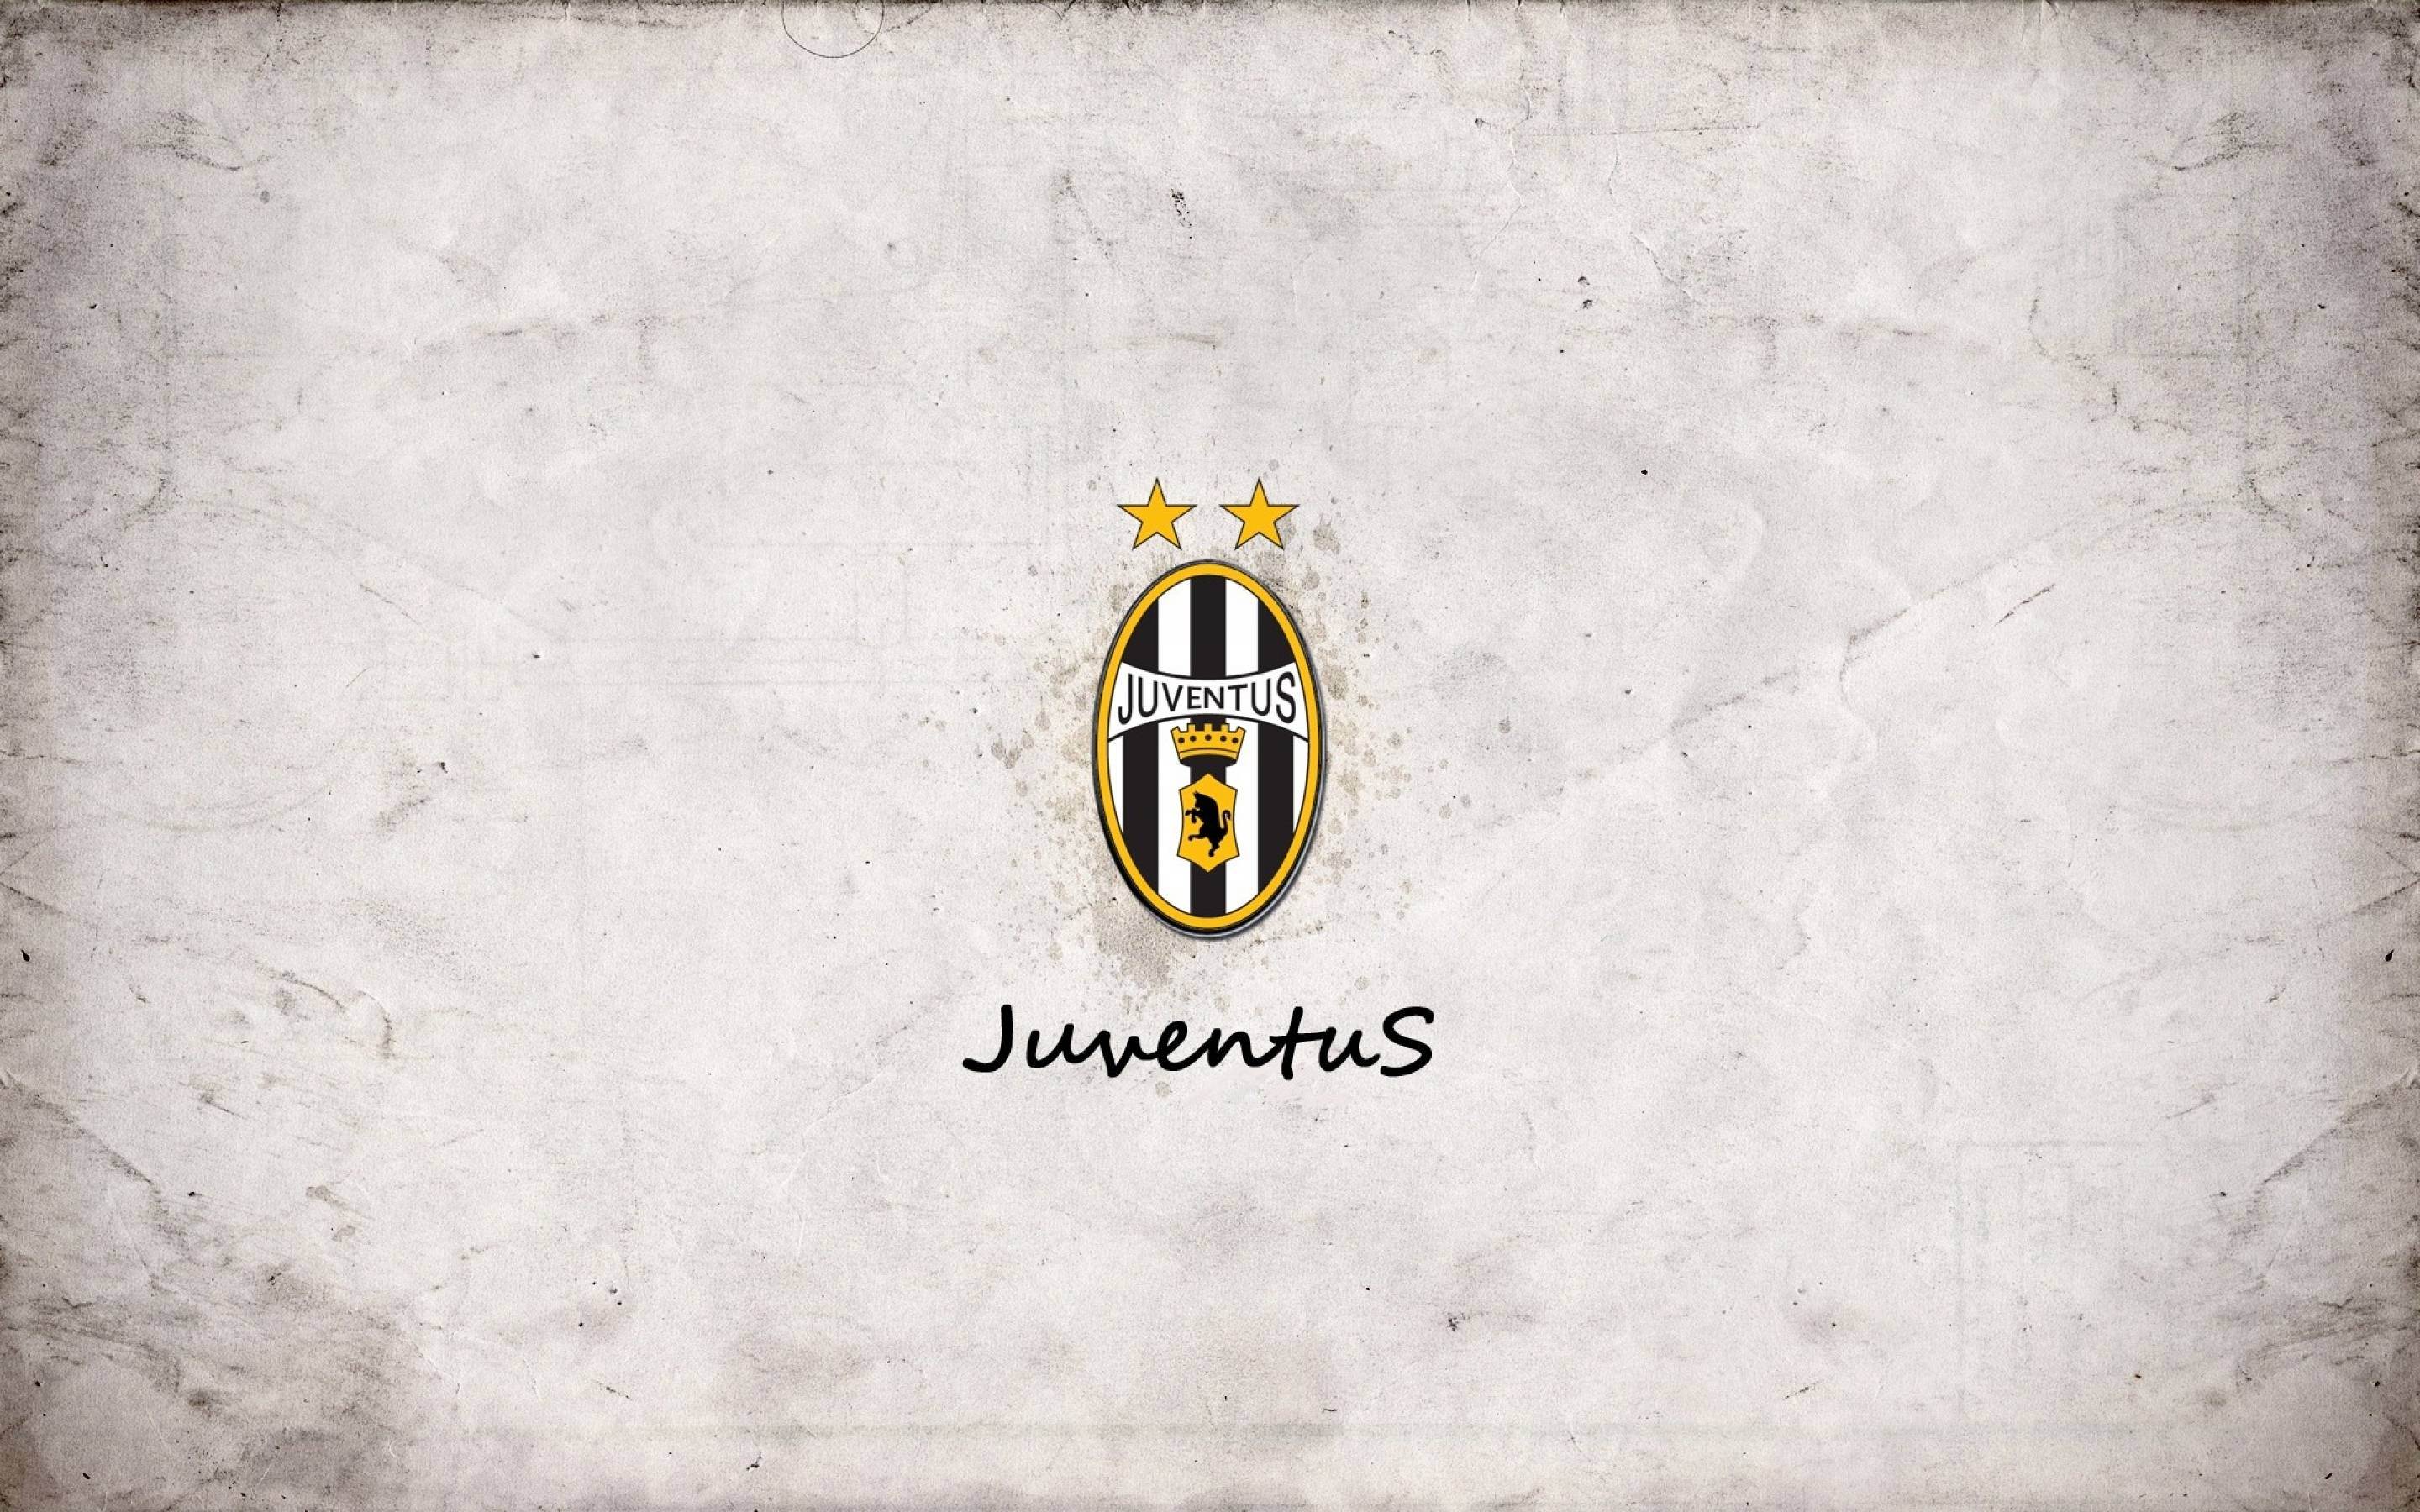 juventus wallpapers full hd wallpaper search